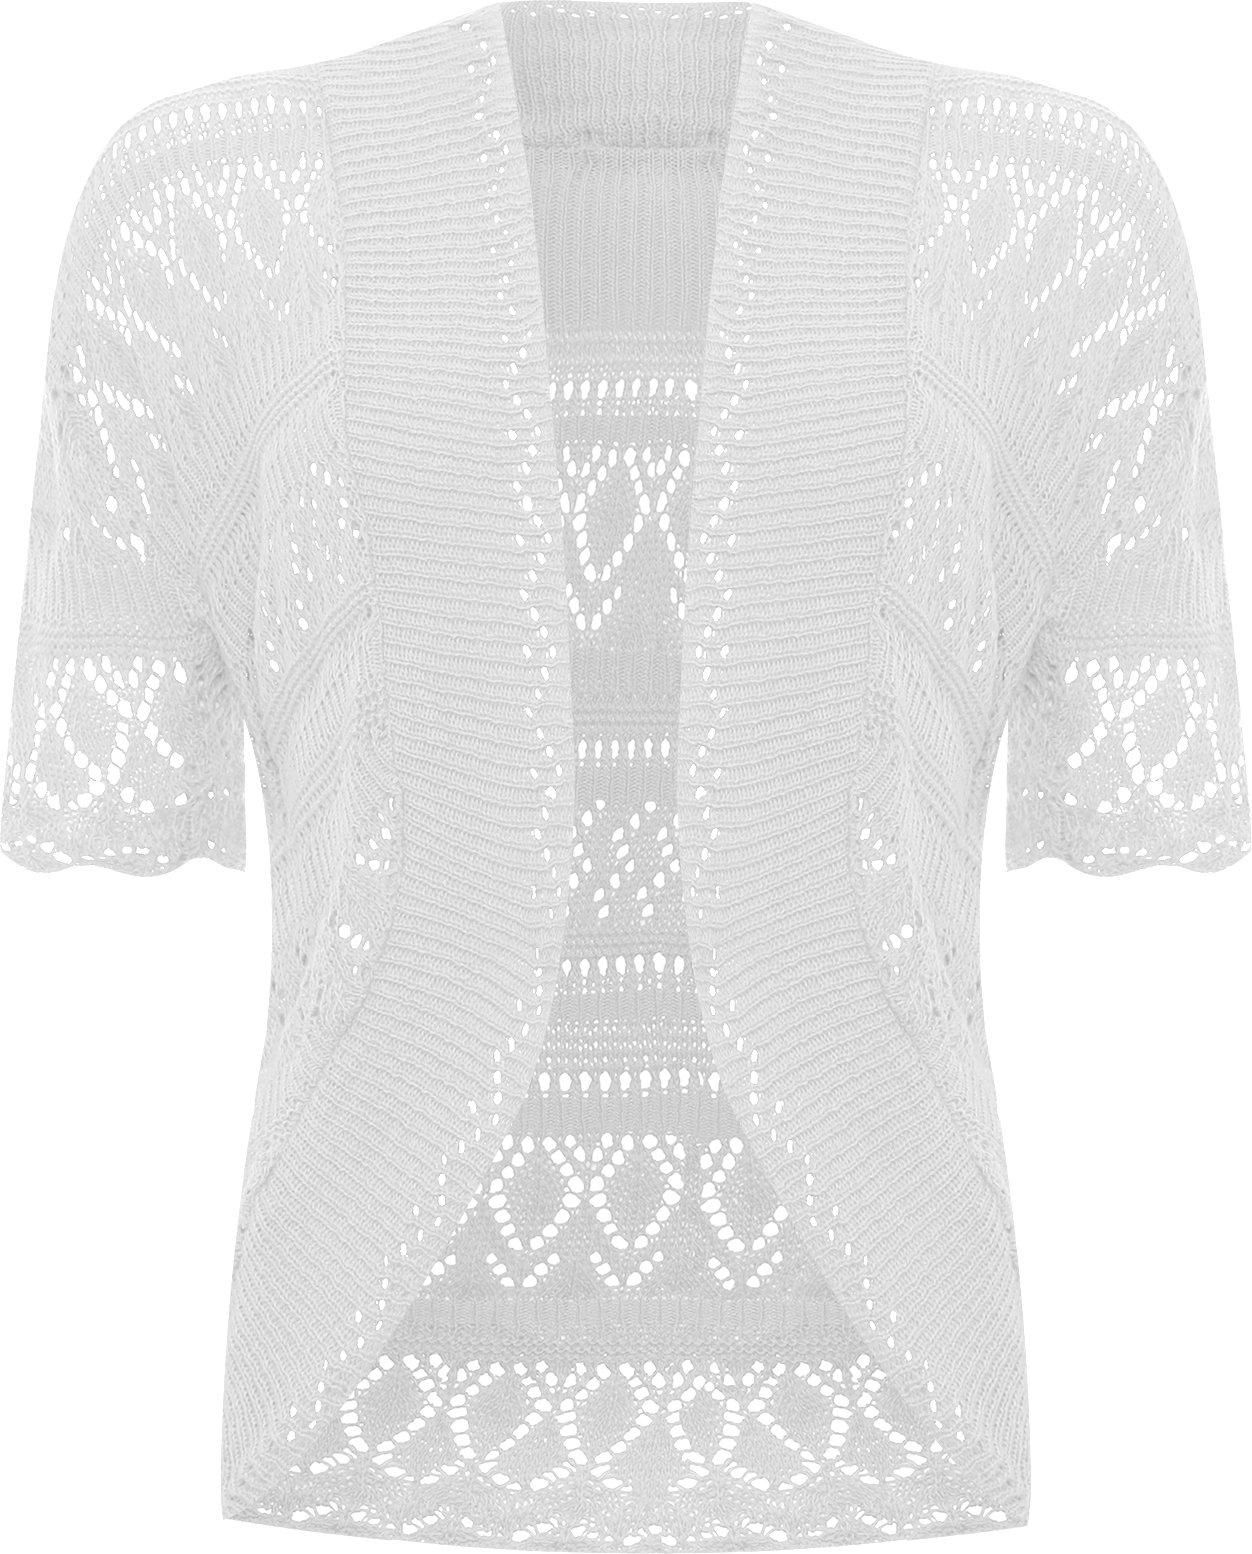 WearAll Women's Plus Size Crochet Knitted Short Sleeve Cardigan - White - US 14-16 (UK 18-20)